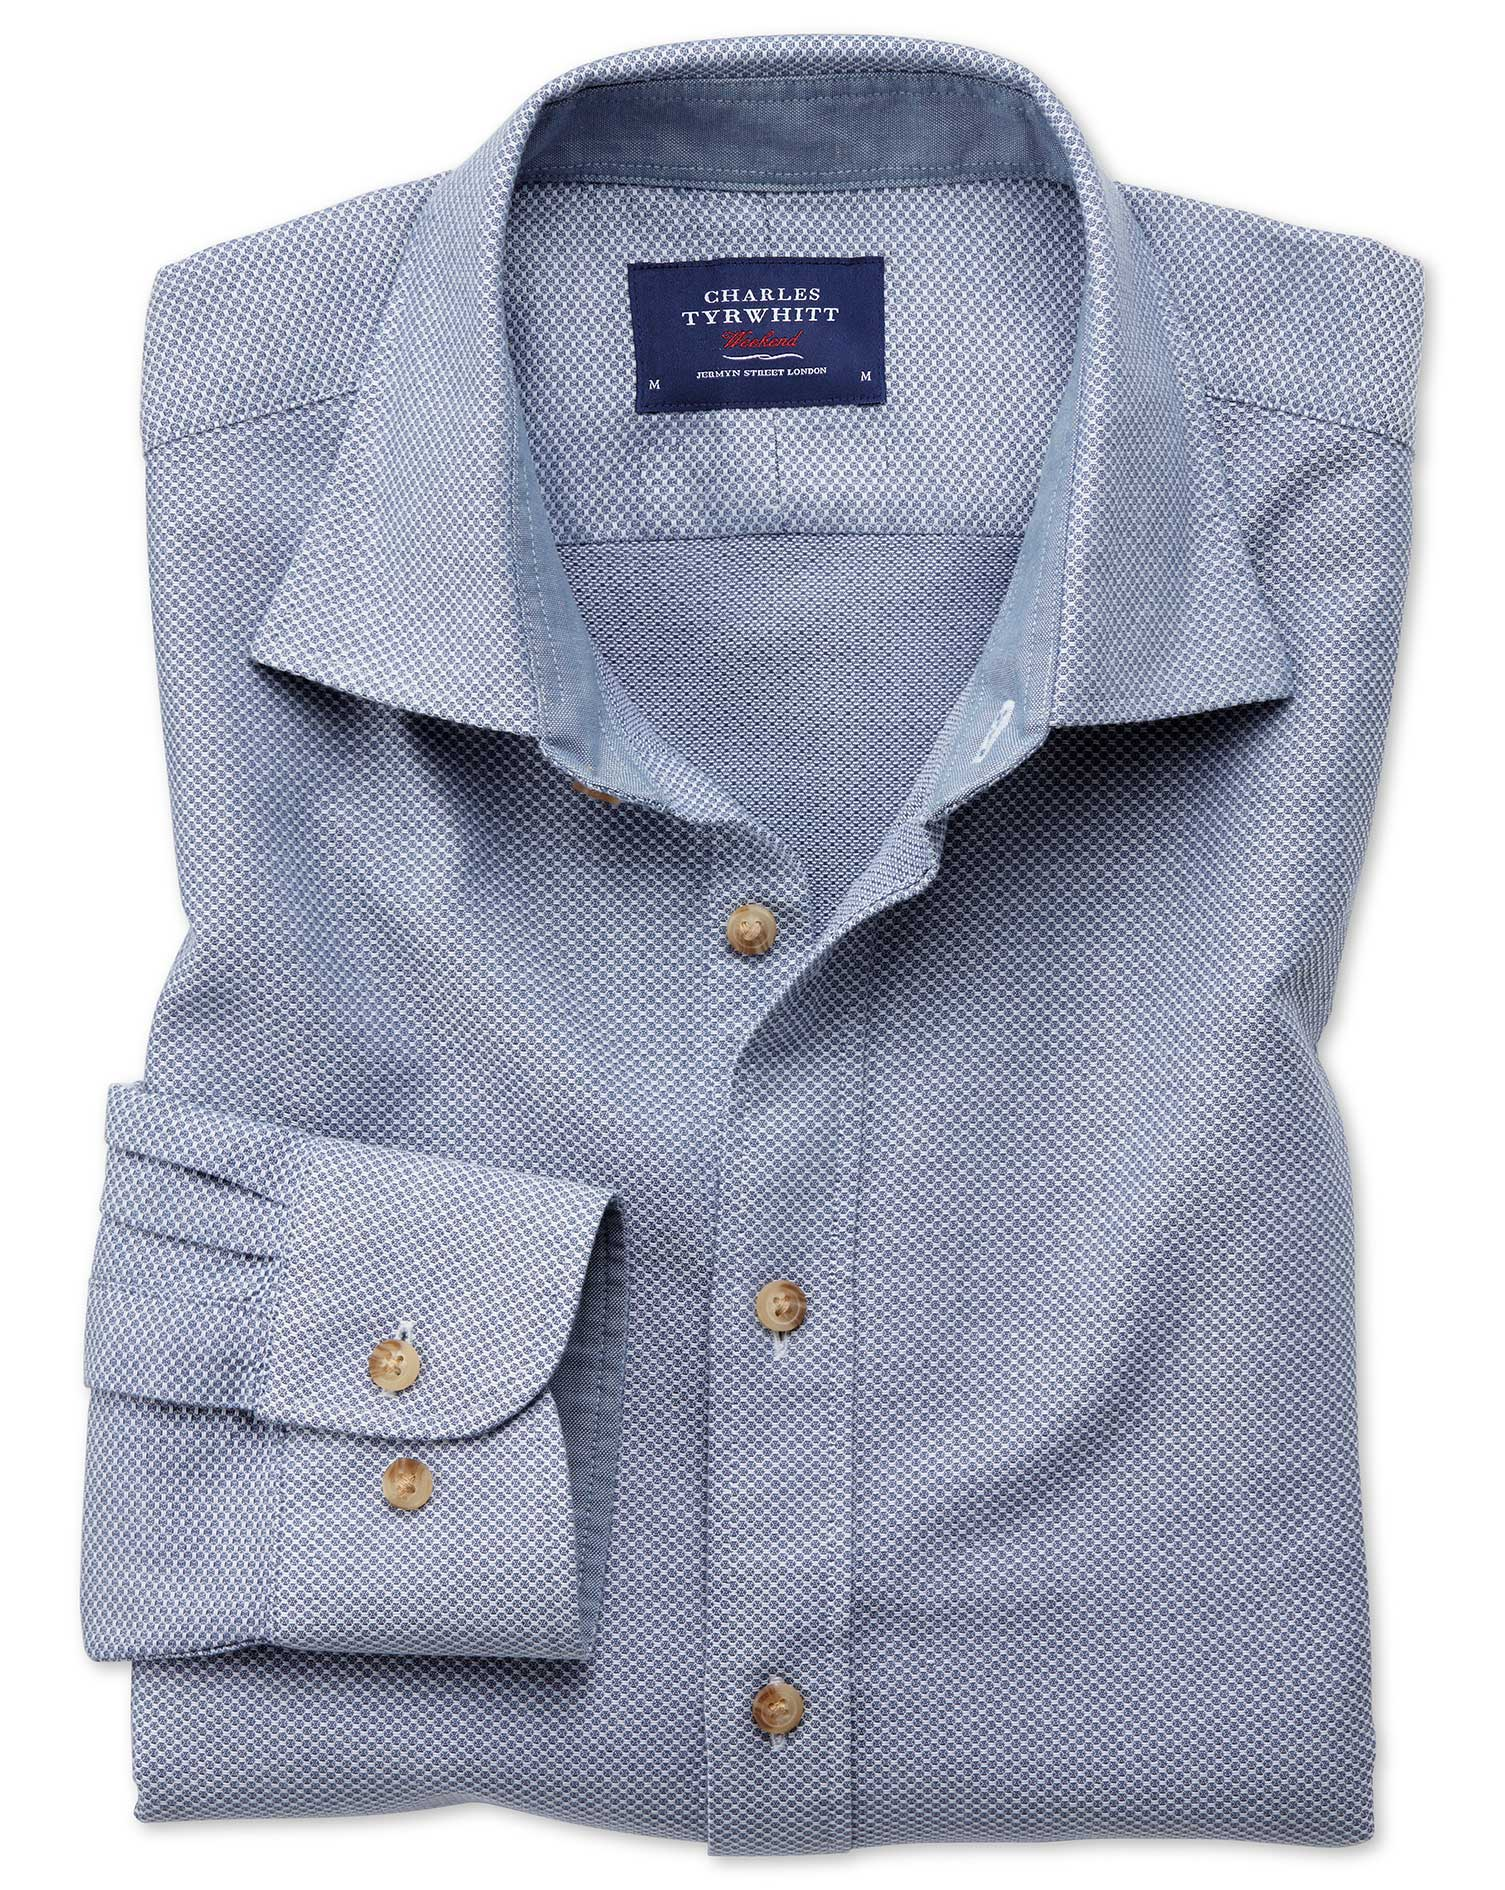 Classic Fit Washed Textured Denim Blue Shirt Charles